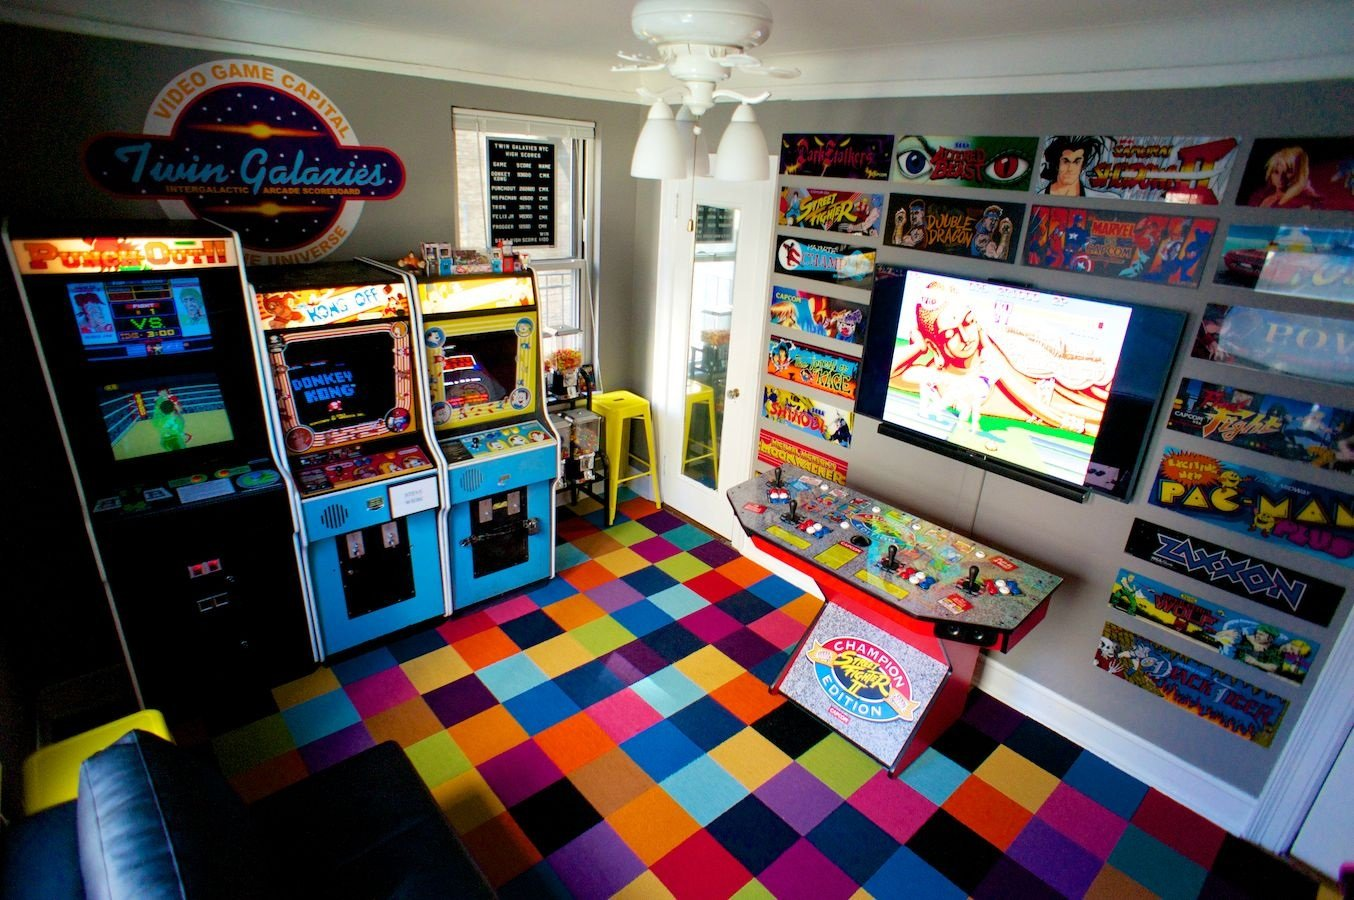 Video game room ideas - colorful decorations